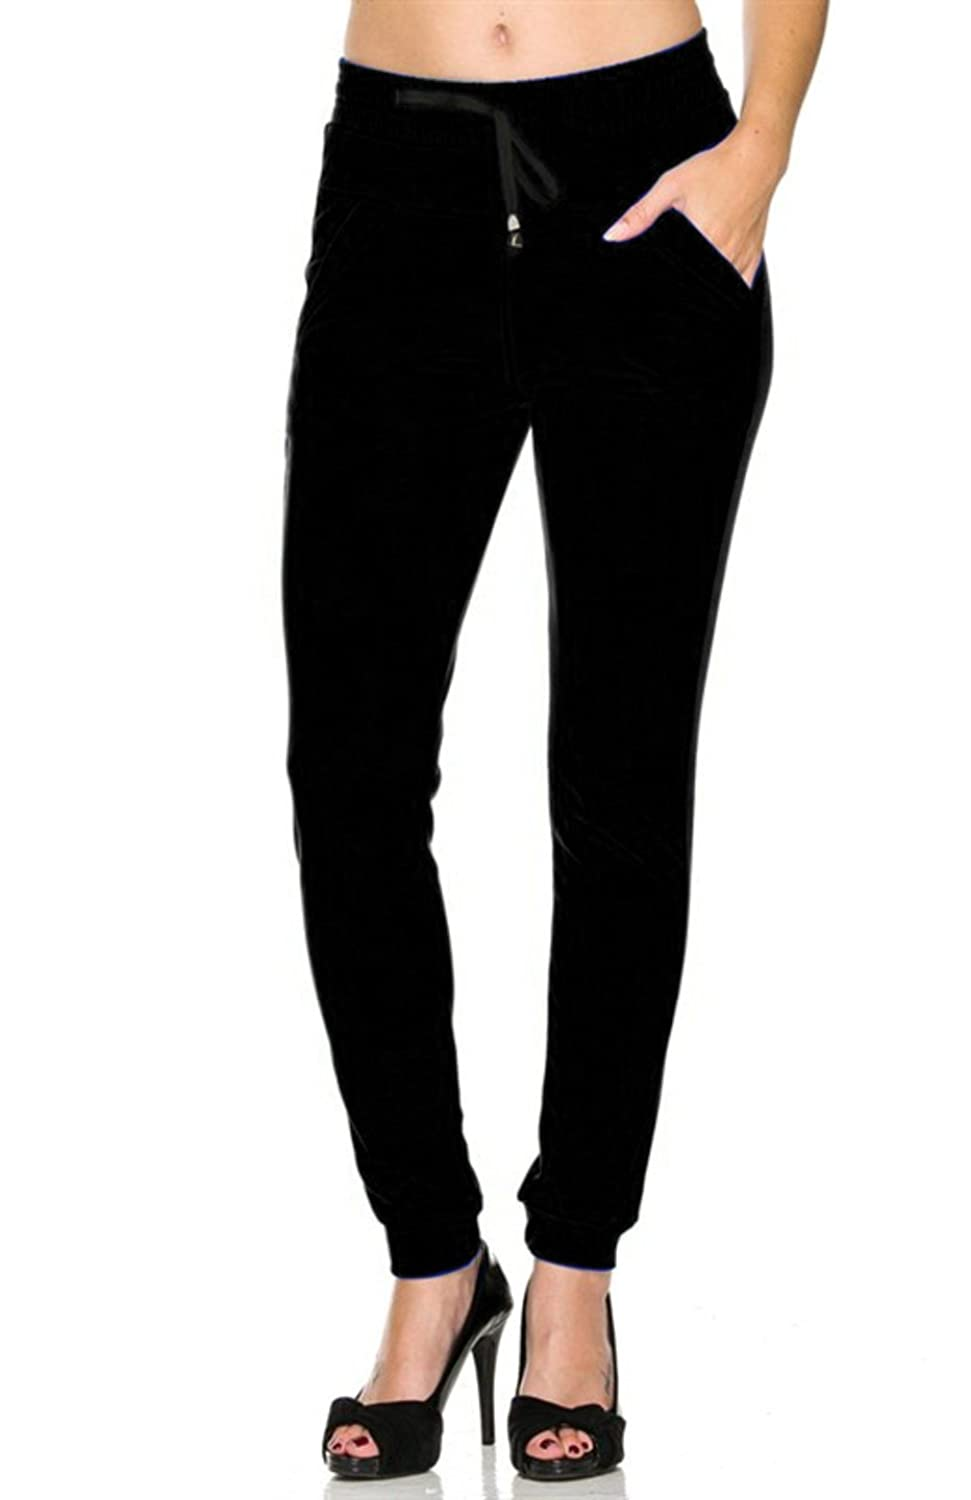 2LUV Women's Comfy and Trendy Jogger Pants with Drawstring and Zipper Pockets